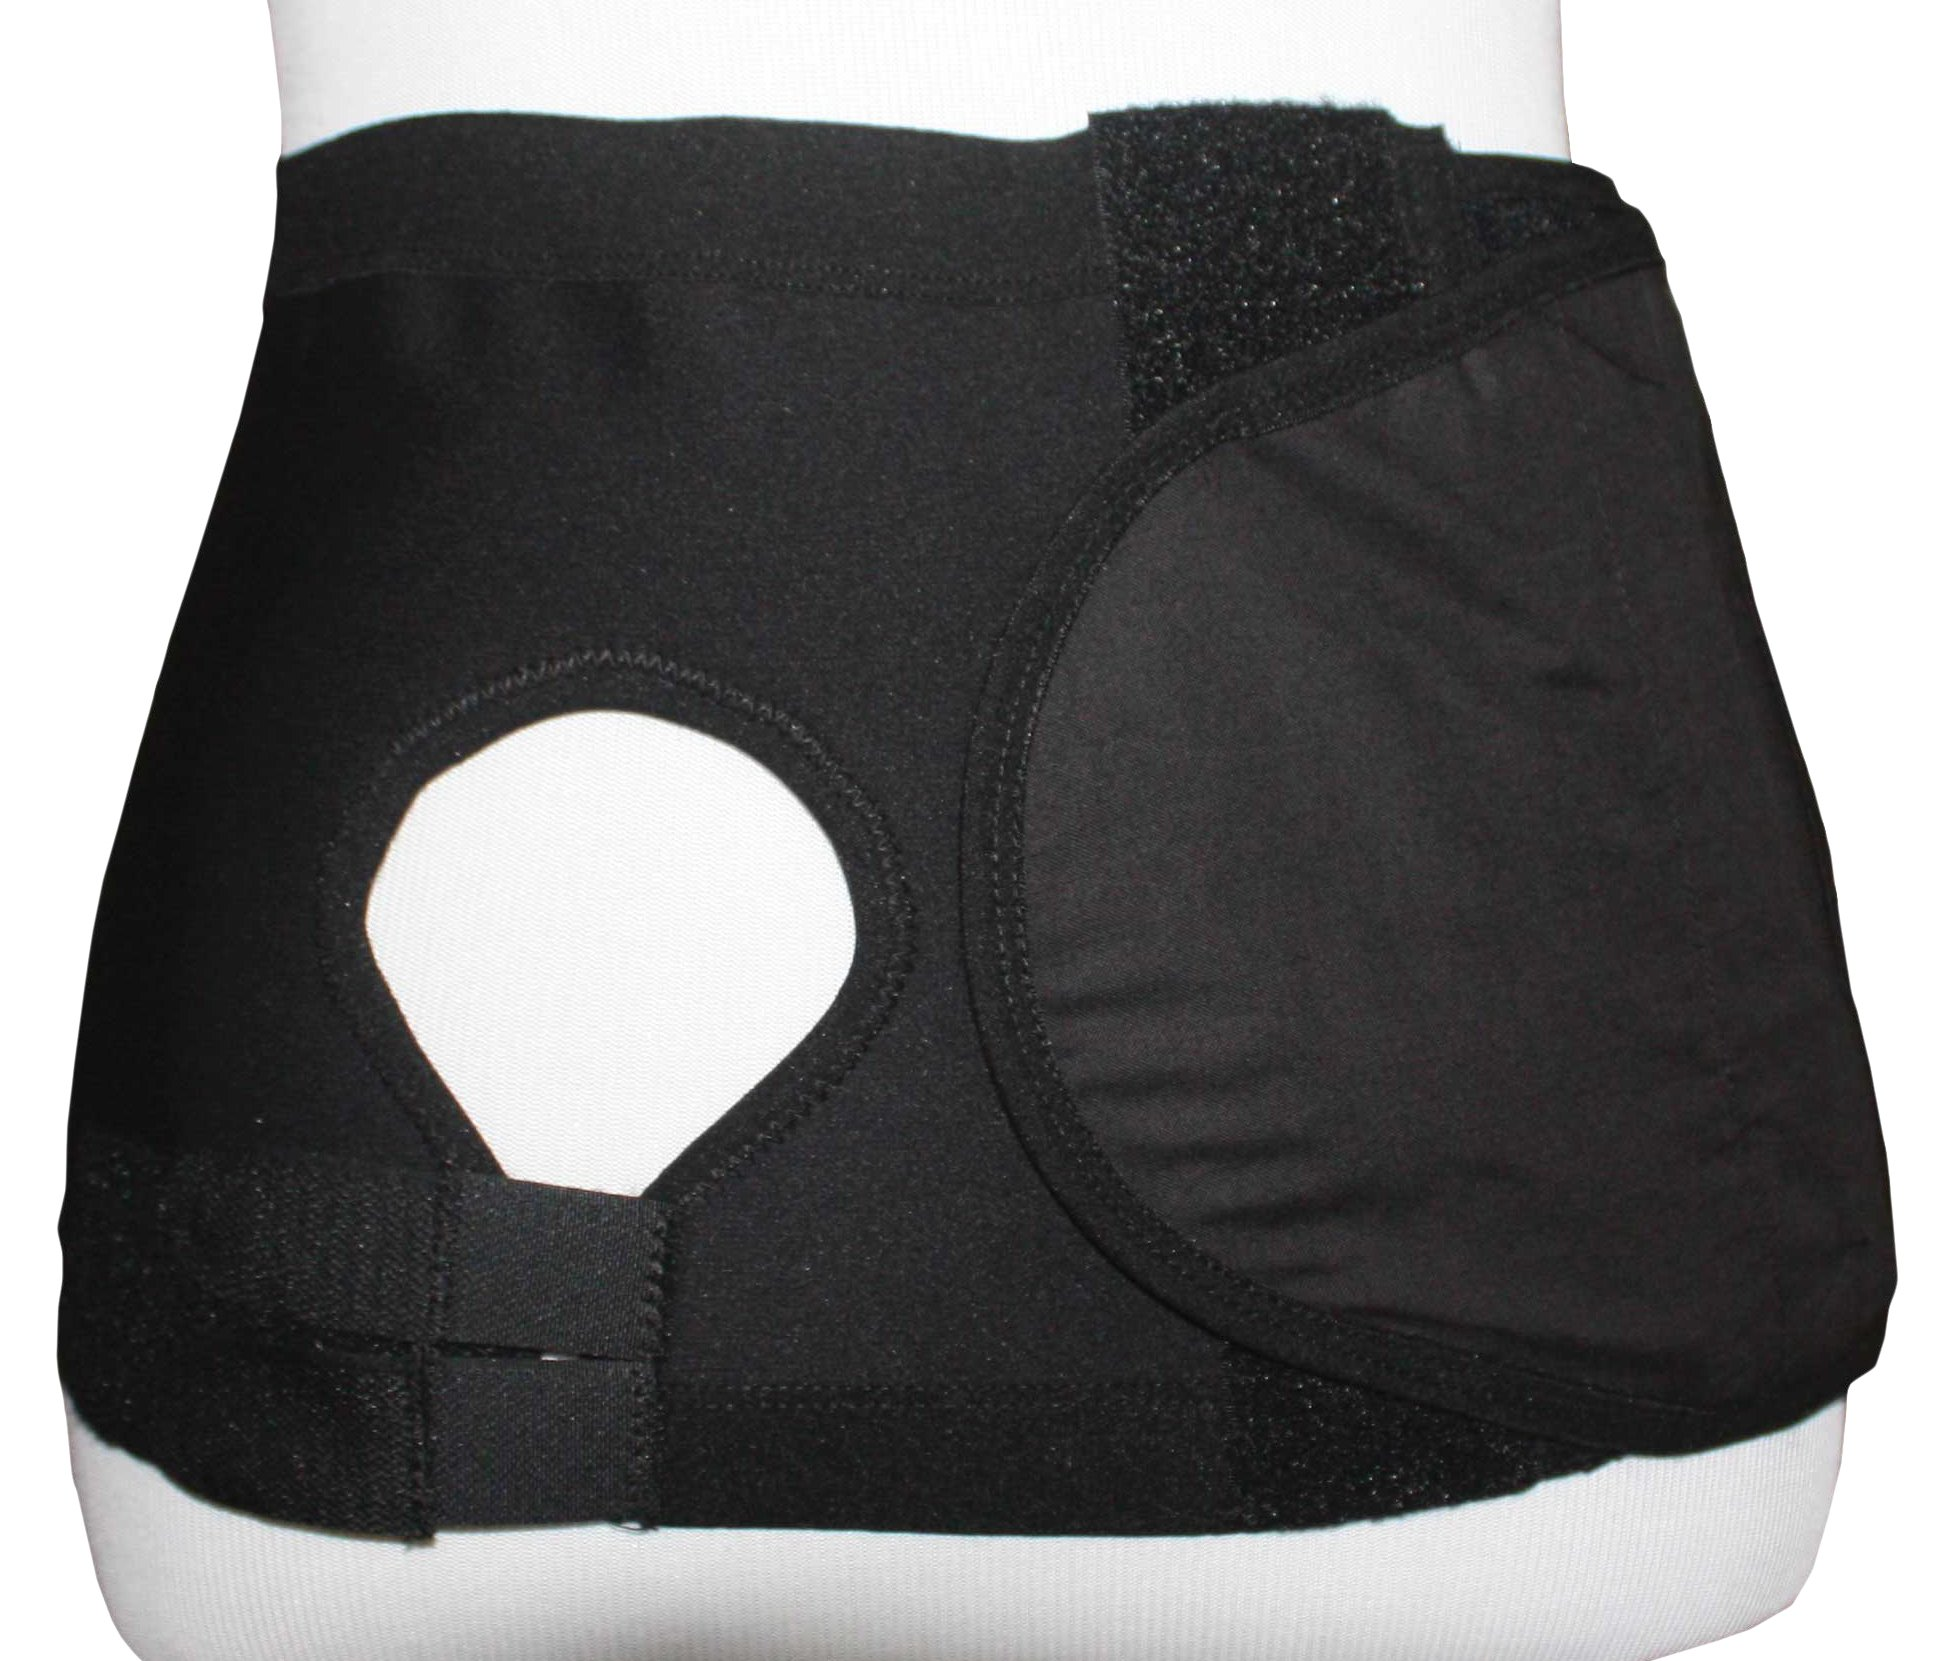 Safe n' Simple Right Hernia Support Belt with Adjustable Hole, 20cm, Black, X-Large